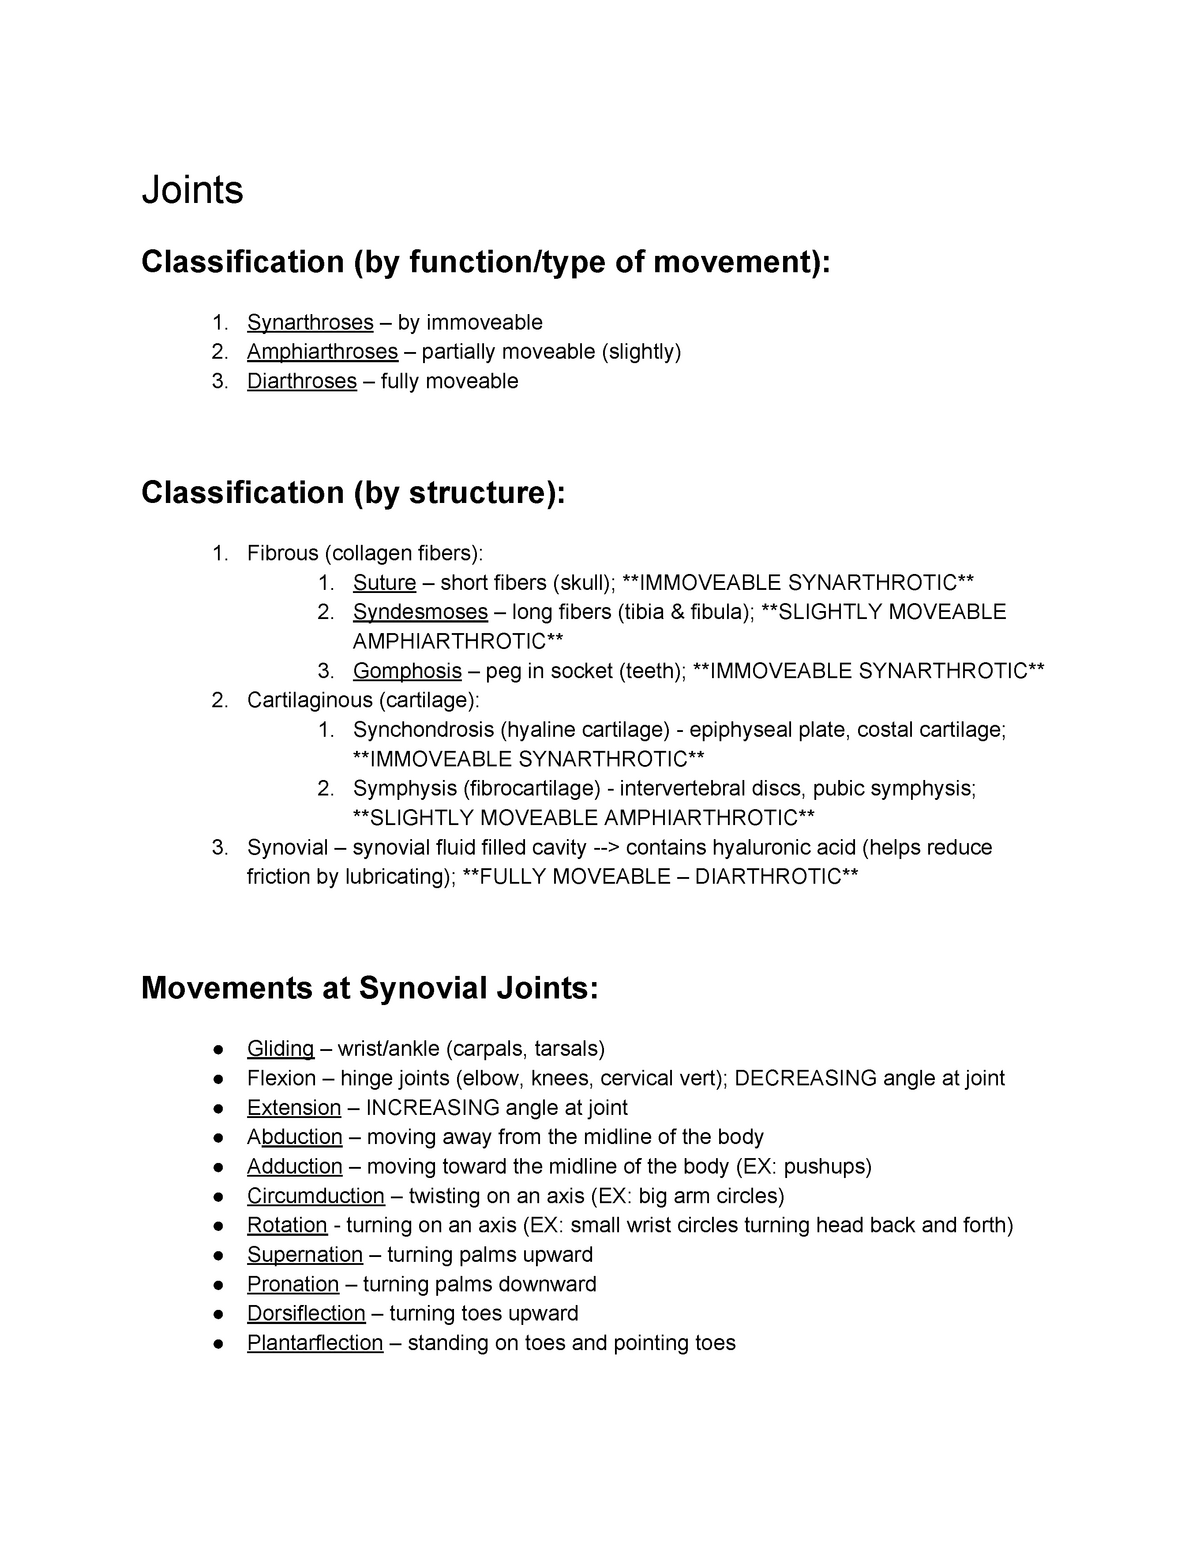 Joints Important Key Notes For Exams Joints Classification Of Movement Immoveable Partially Moveable Slightly Fully Moveable Classification Structure Fibrous Studocu Thus, a symphysis is functionally classified as an. studocu